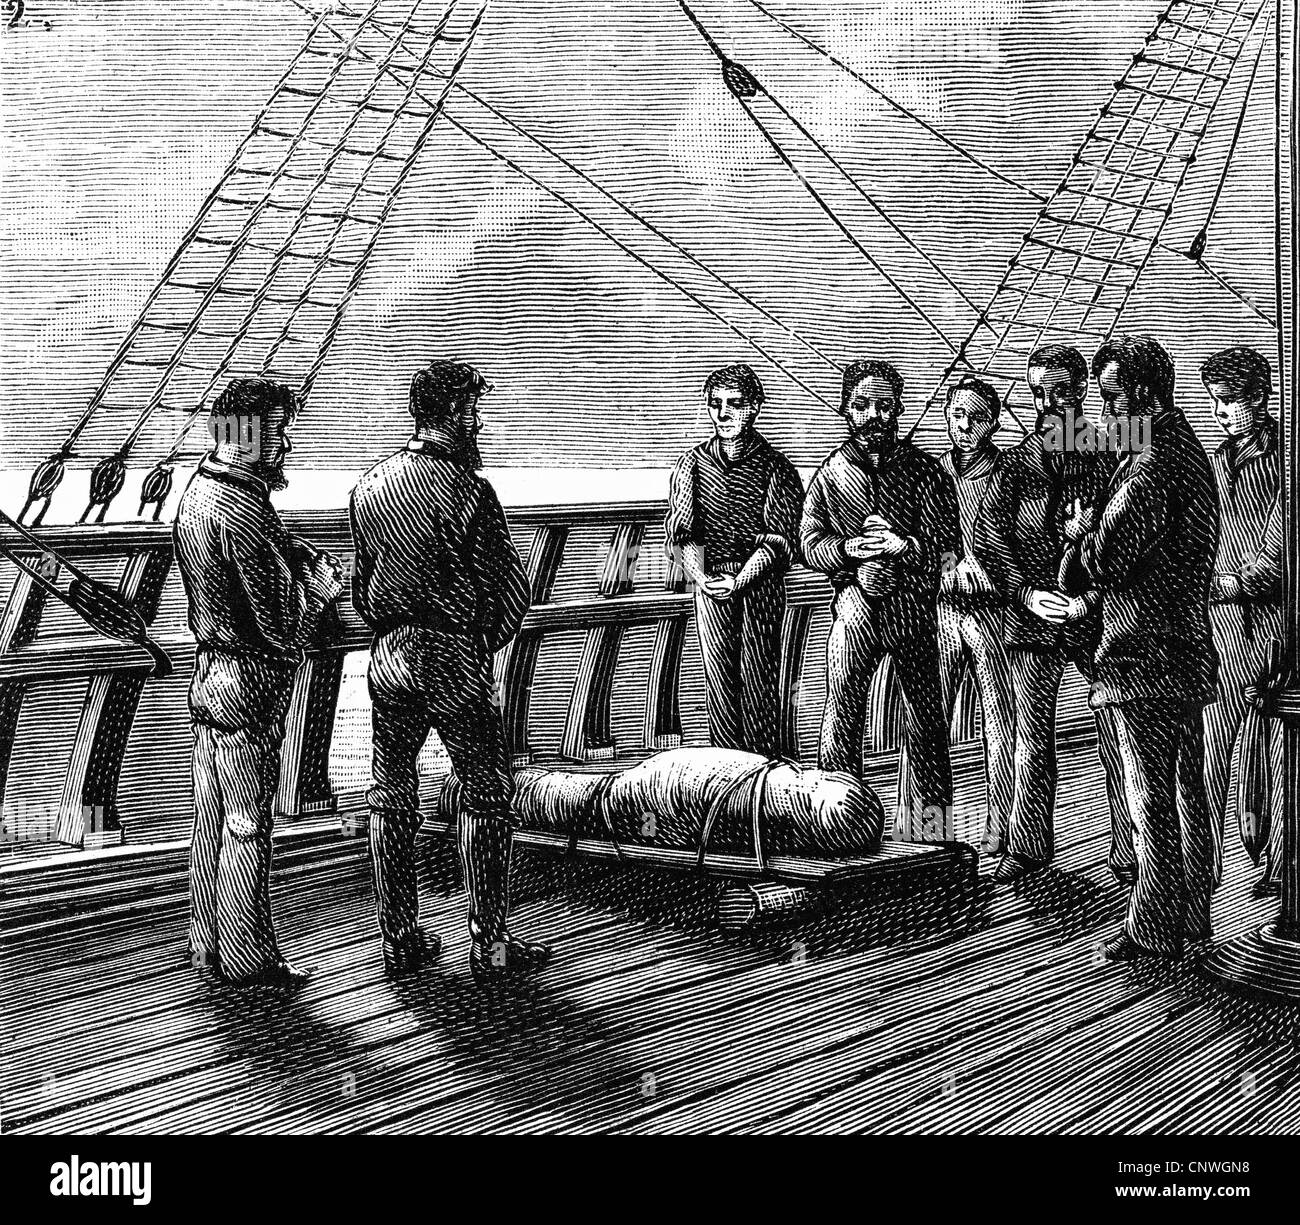 transport / transportation, navigation, life and work, burial at sea, after drawing by Carl Schildt, wood engraving, - Stock Image